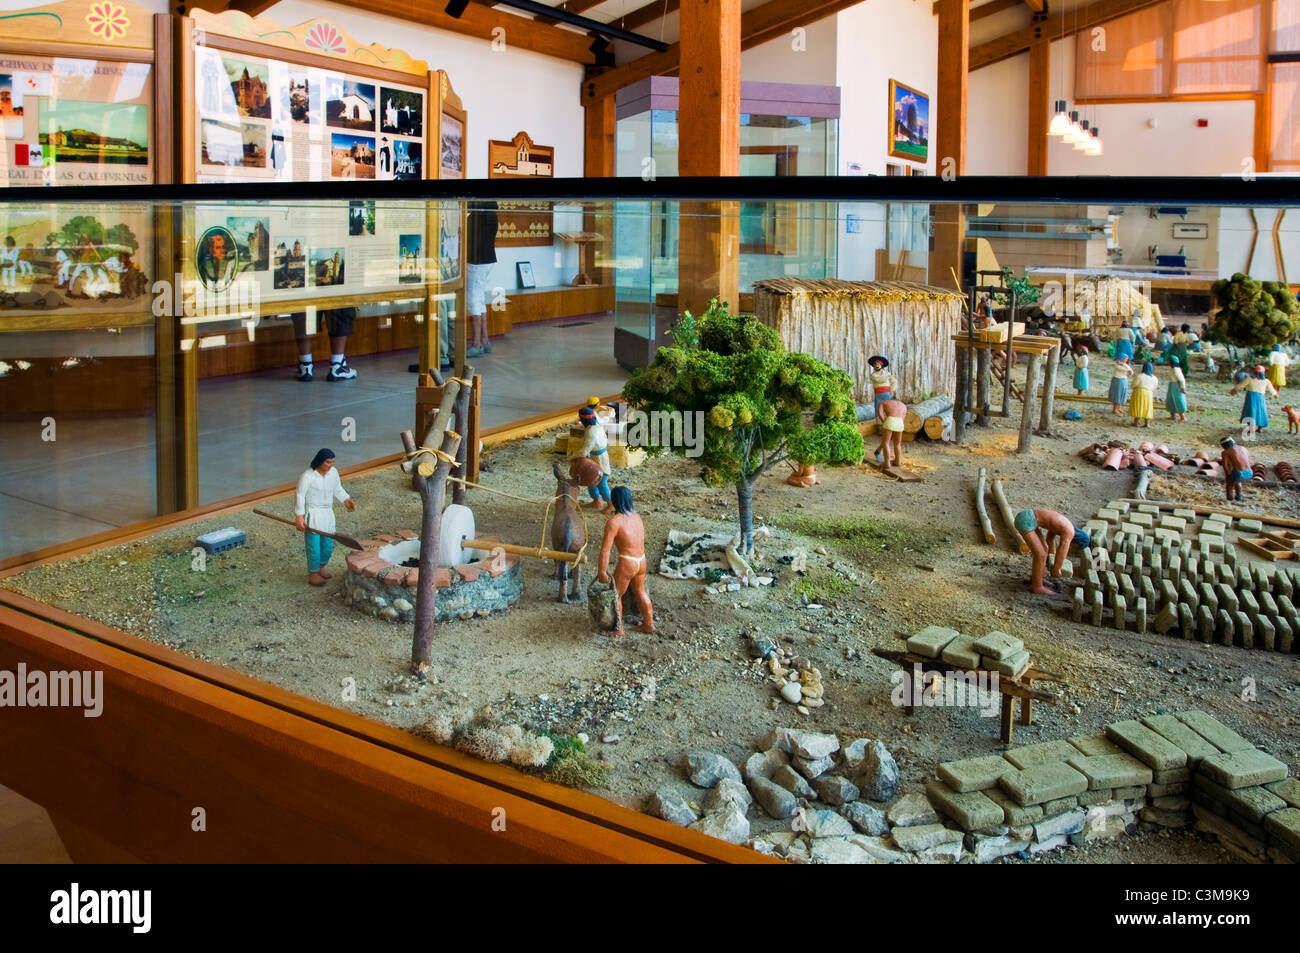 Exhibit at the visitor center La Purisma Mission State Historical Park, California - Stock Image